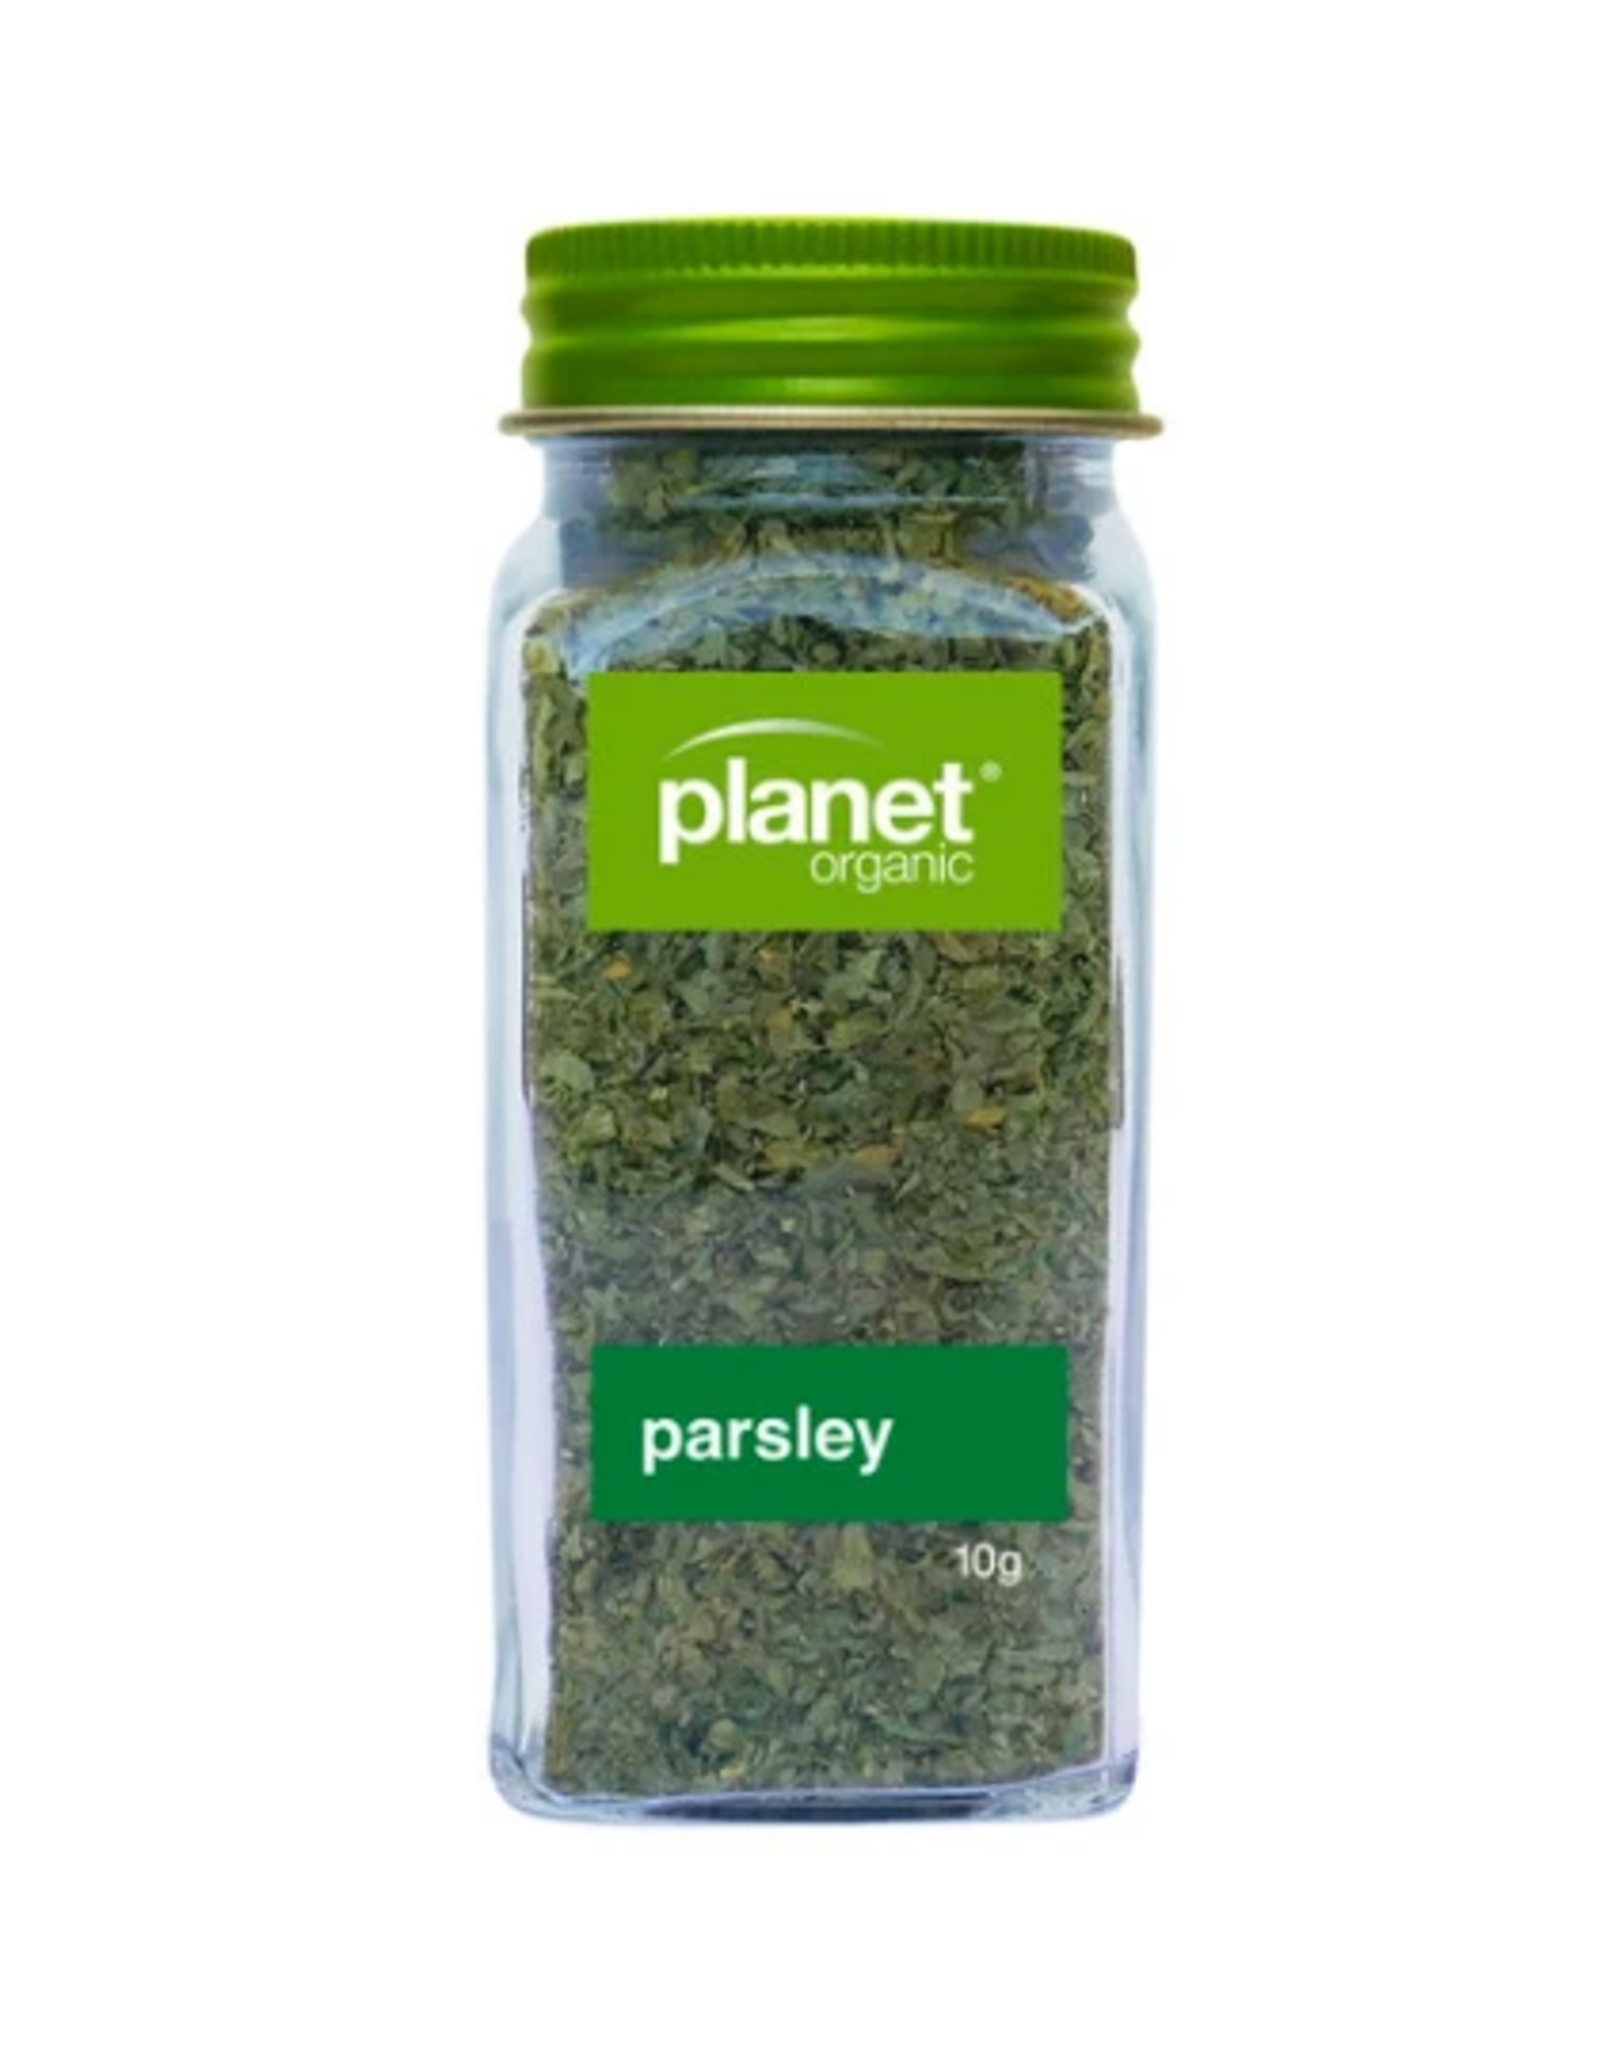 Planet Organic Parsley 10g